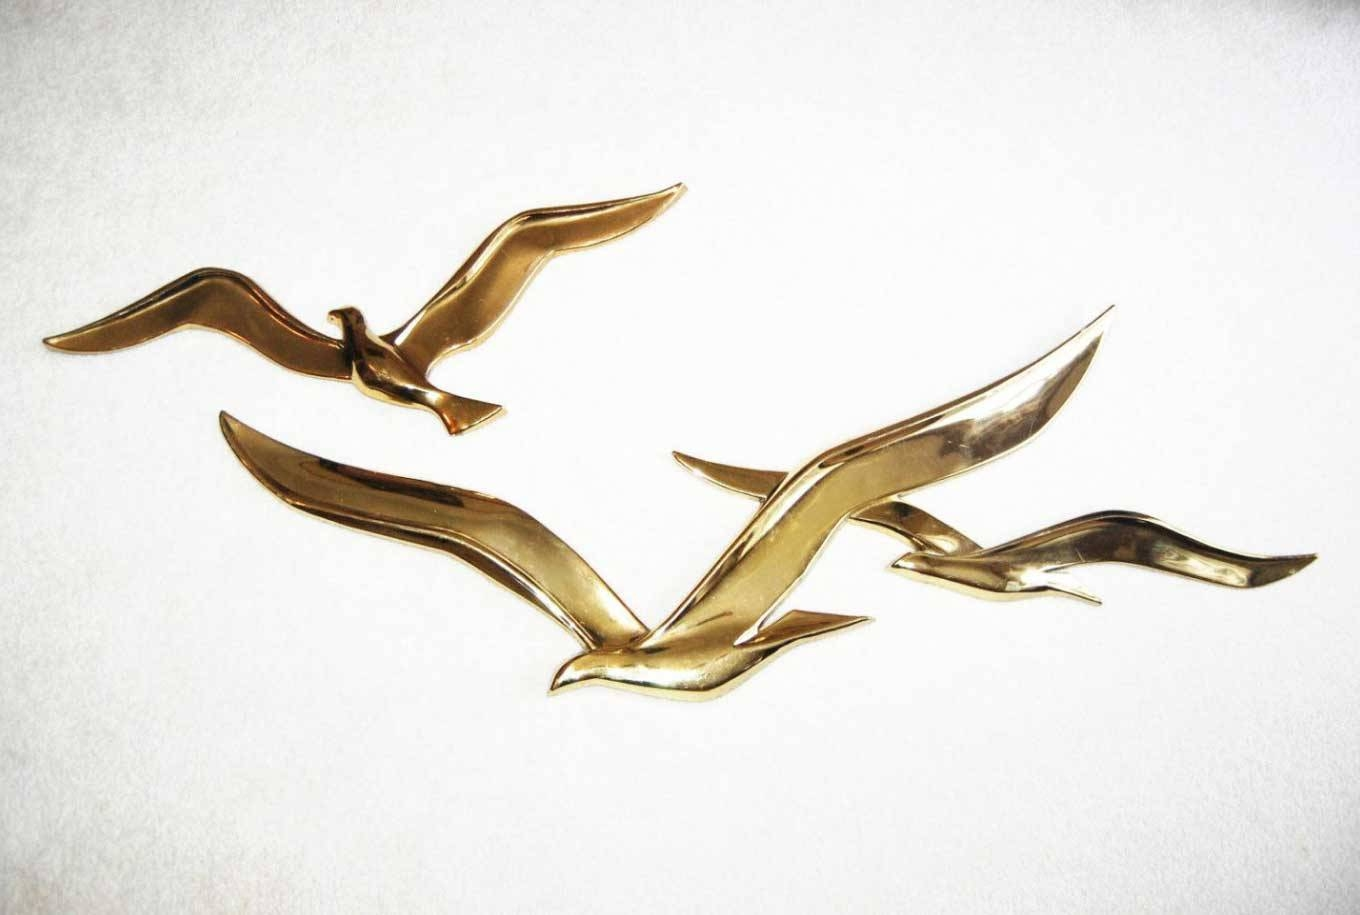 Flying Birds Metal Wall Art Gold Sculpture | Home Interior & Exterior Pertaining To Most Up To Date Flying Birds Metal Wall Art (View 8 of 25)